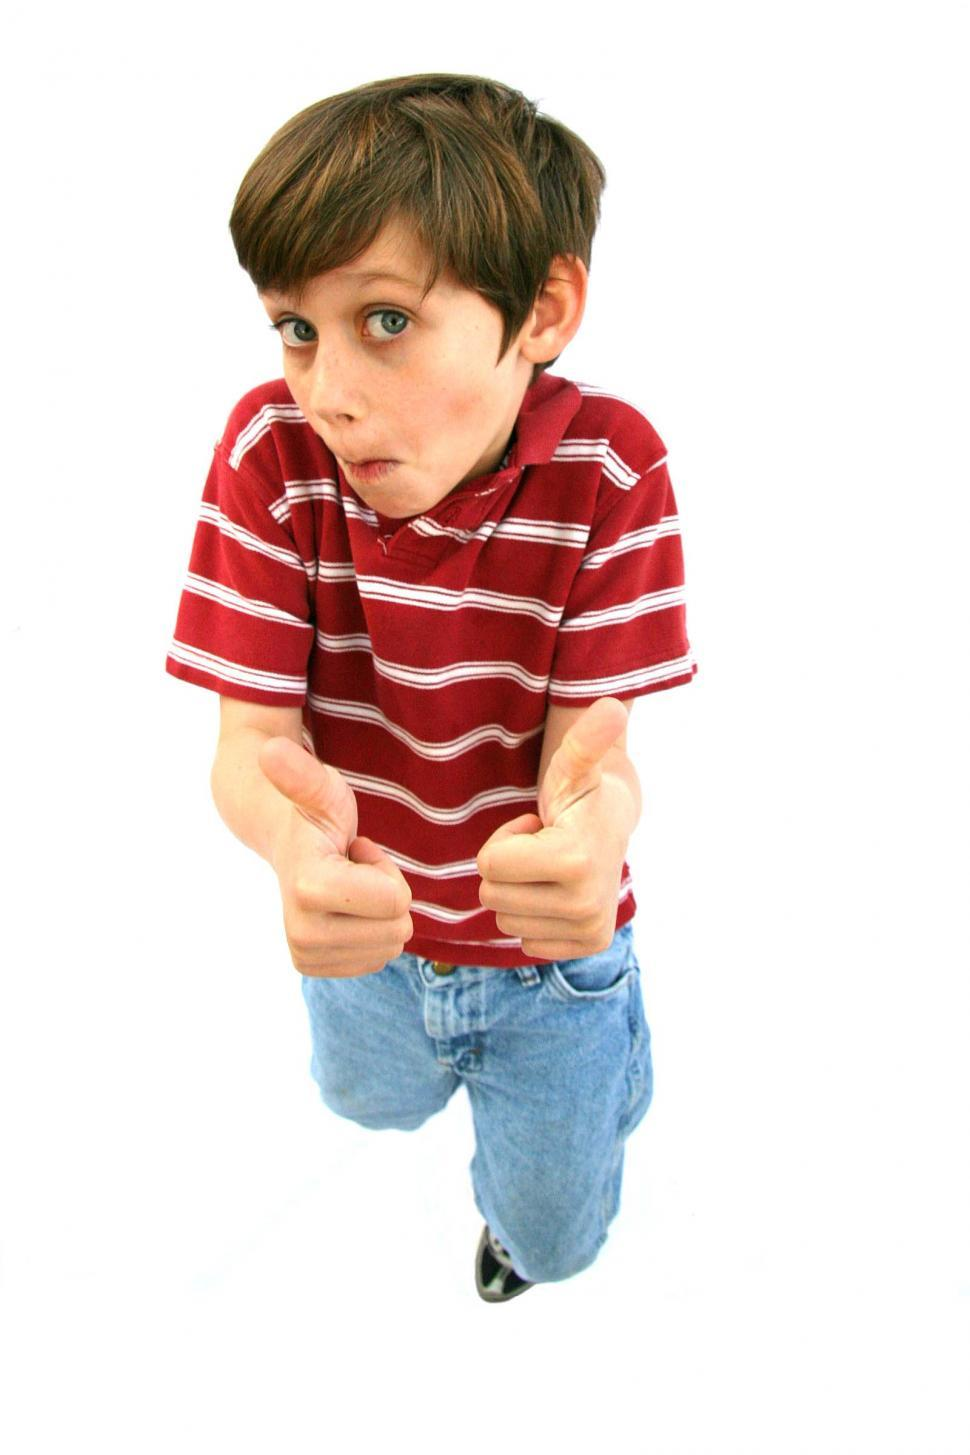 Download Free Stock Photo of Thumbs up kid